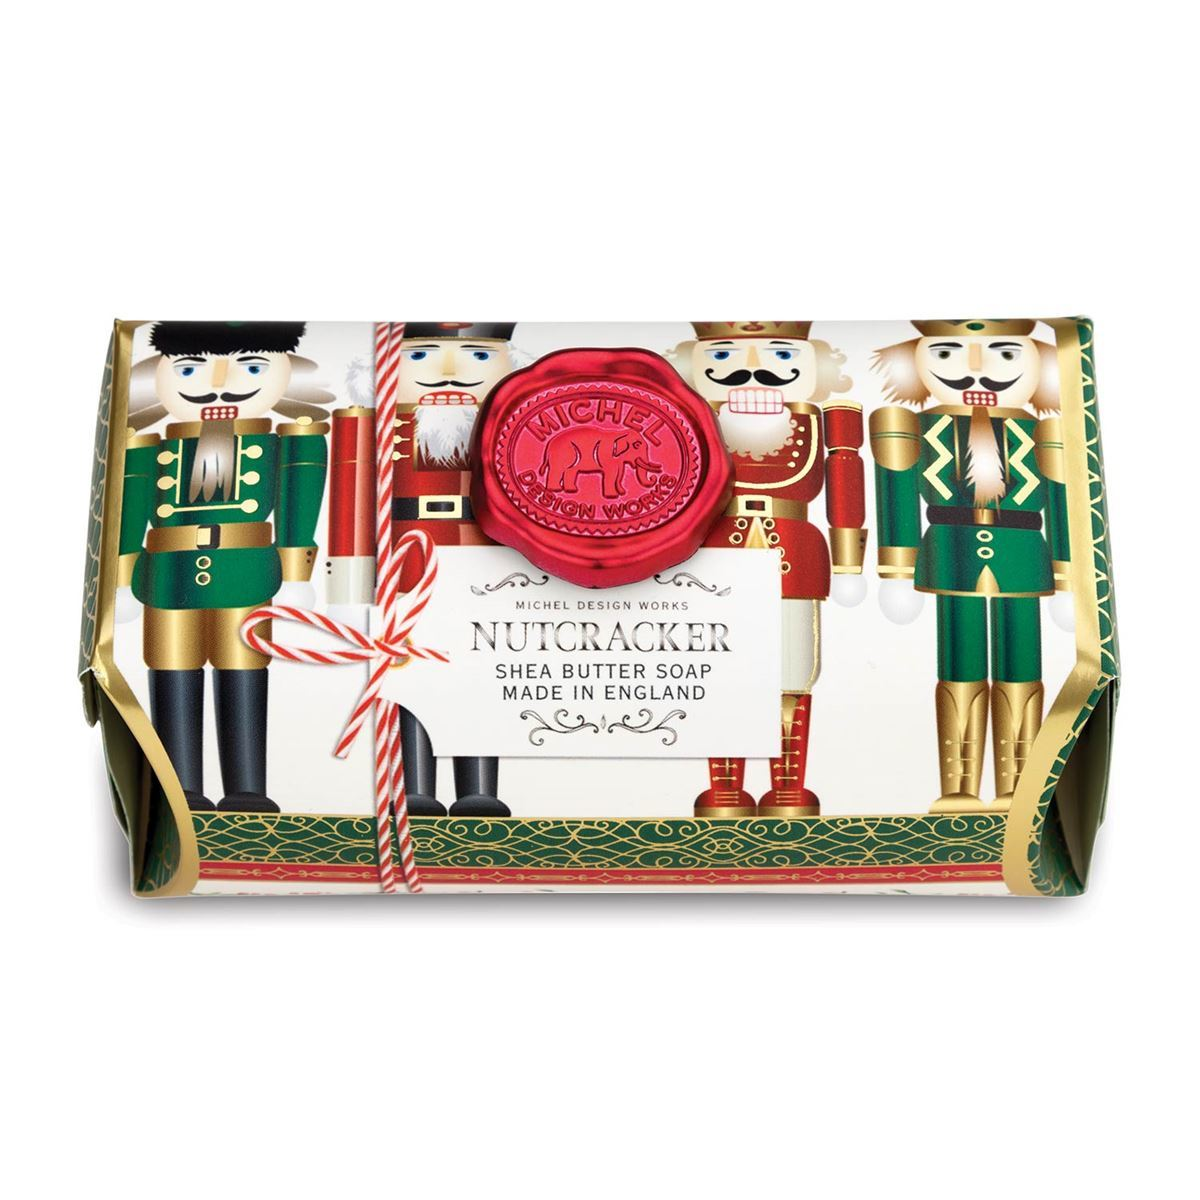 Michel Design Works Nutcracker Large Bath Soap Bar 8.7oz